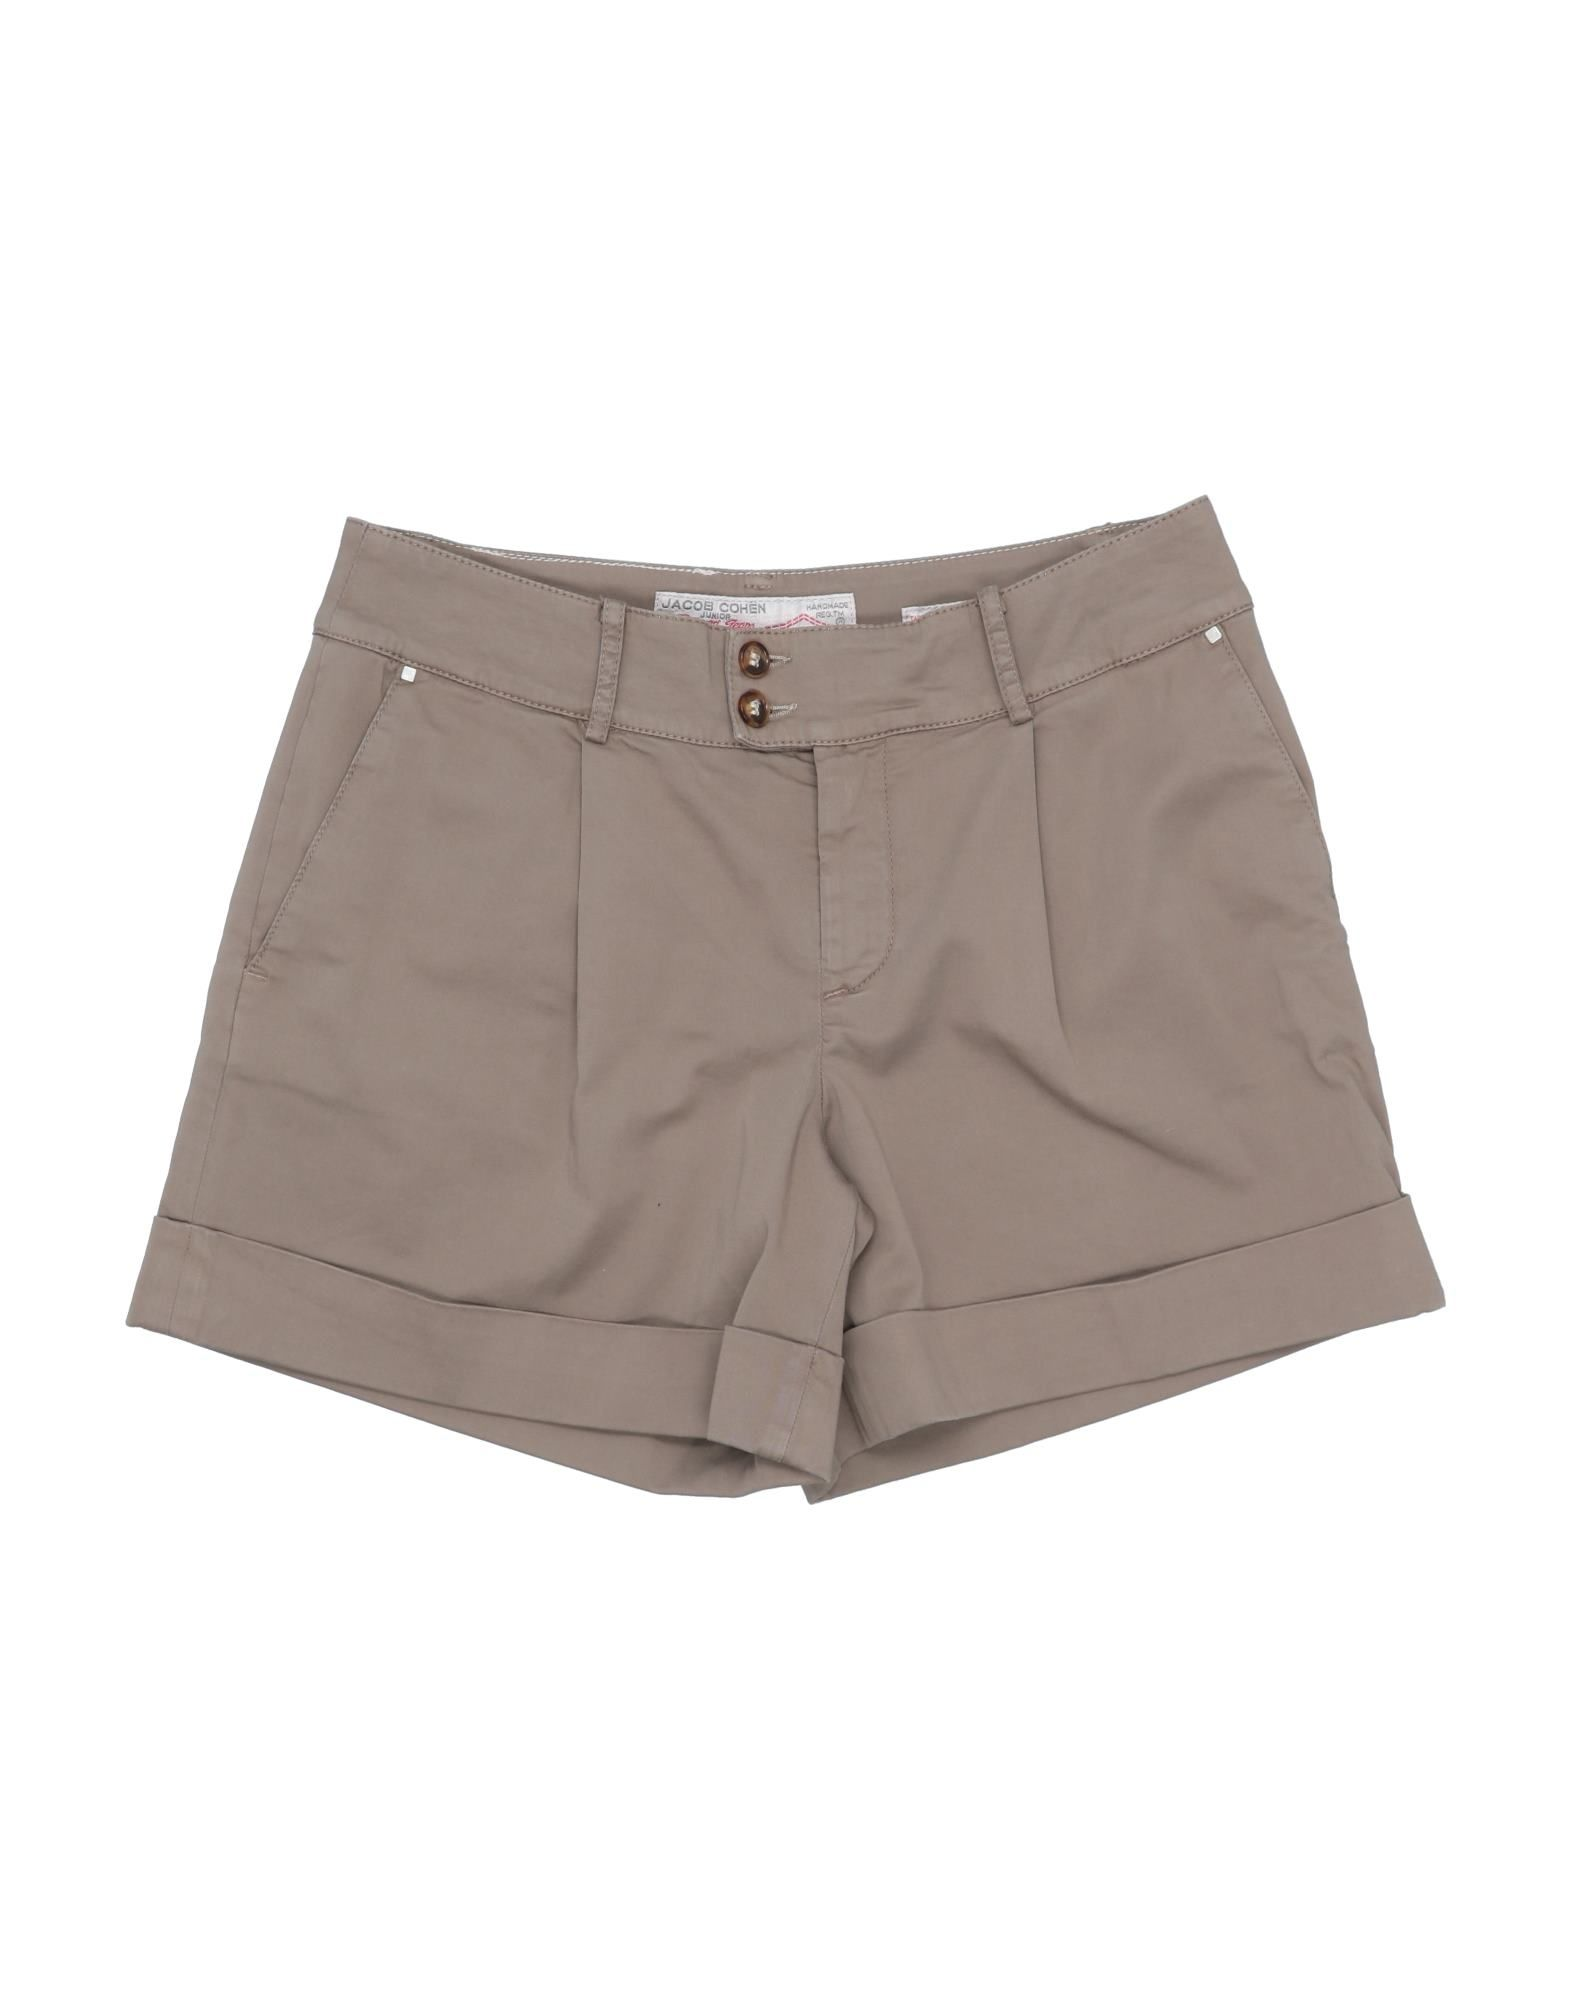 Jacob Cohёn Kids' Shorts In Gray